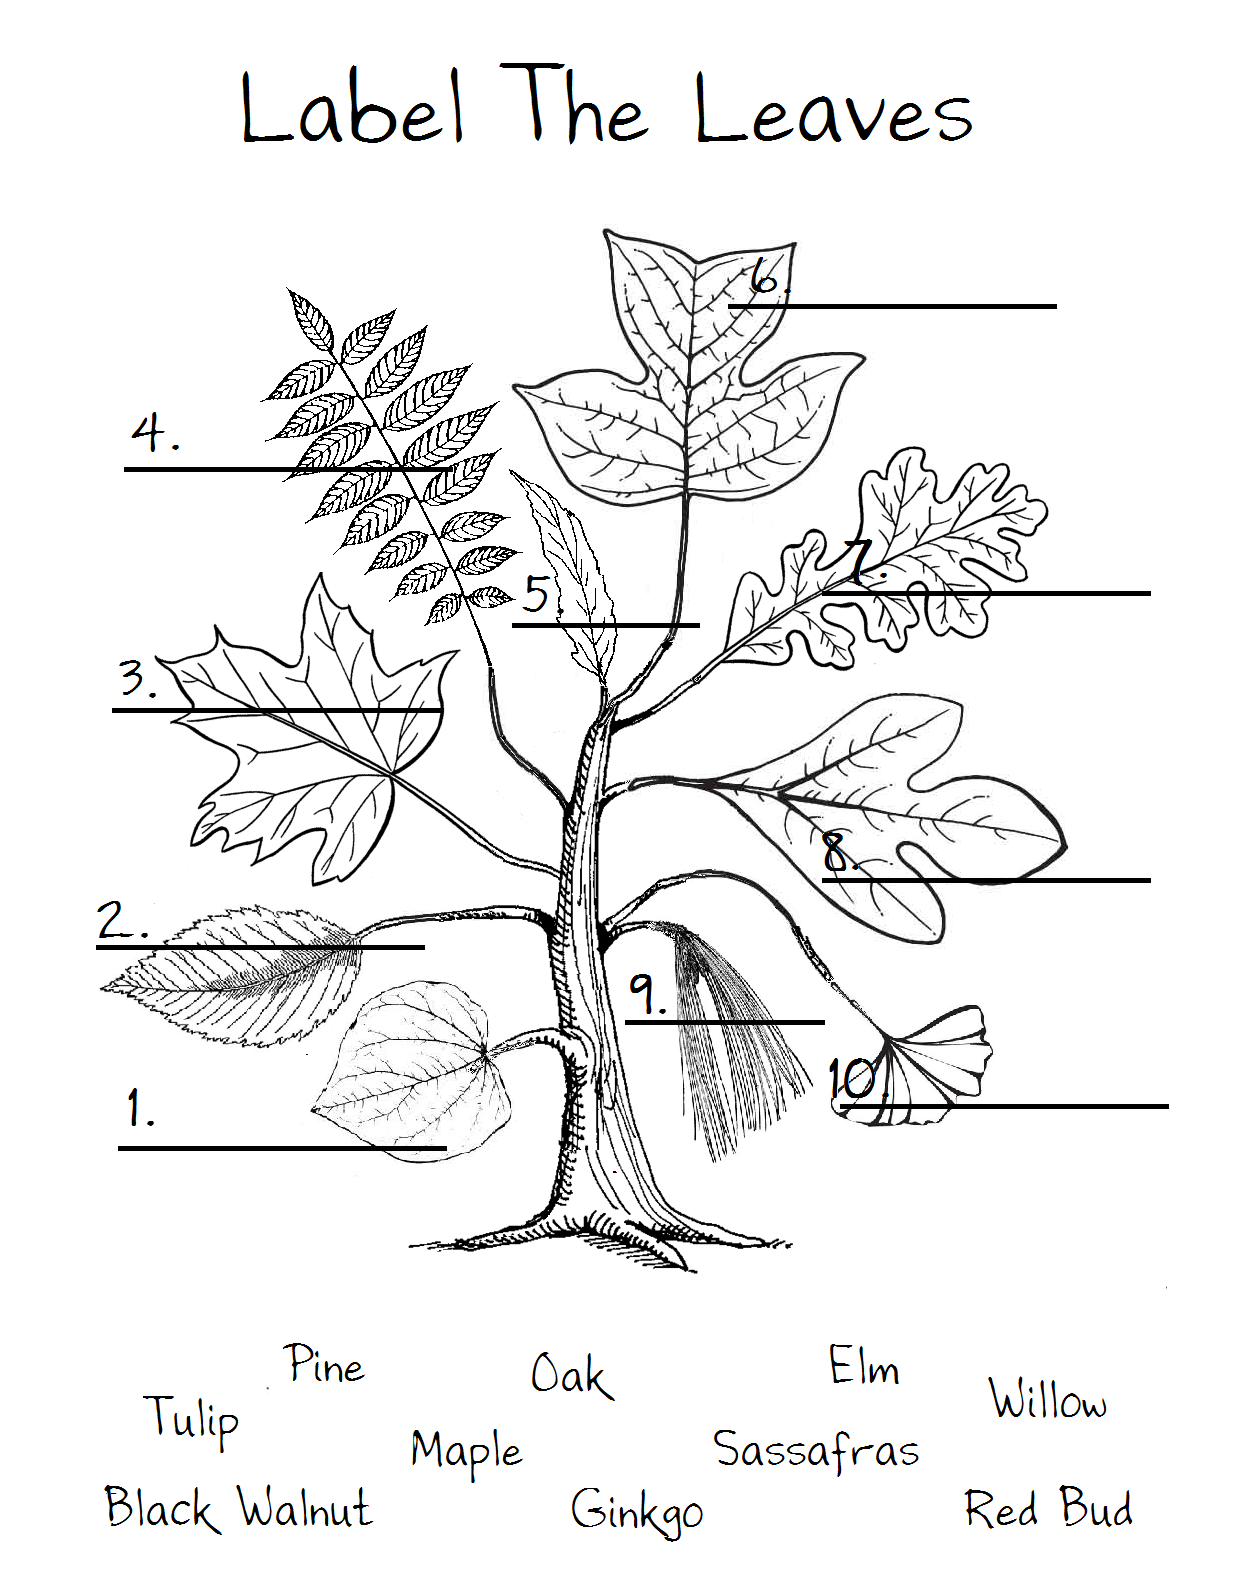 worksheet Worksheet D Taxonomic Key Answers 1 red bud 2 elm 3 maple 4 black walnut 5 willow 6 tulip 7 oak will work with dichotomous key